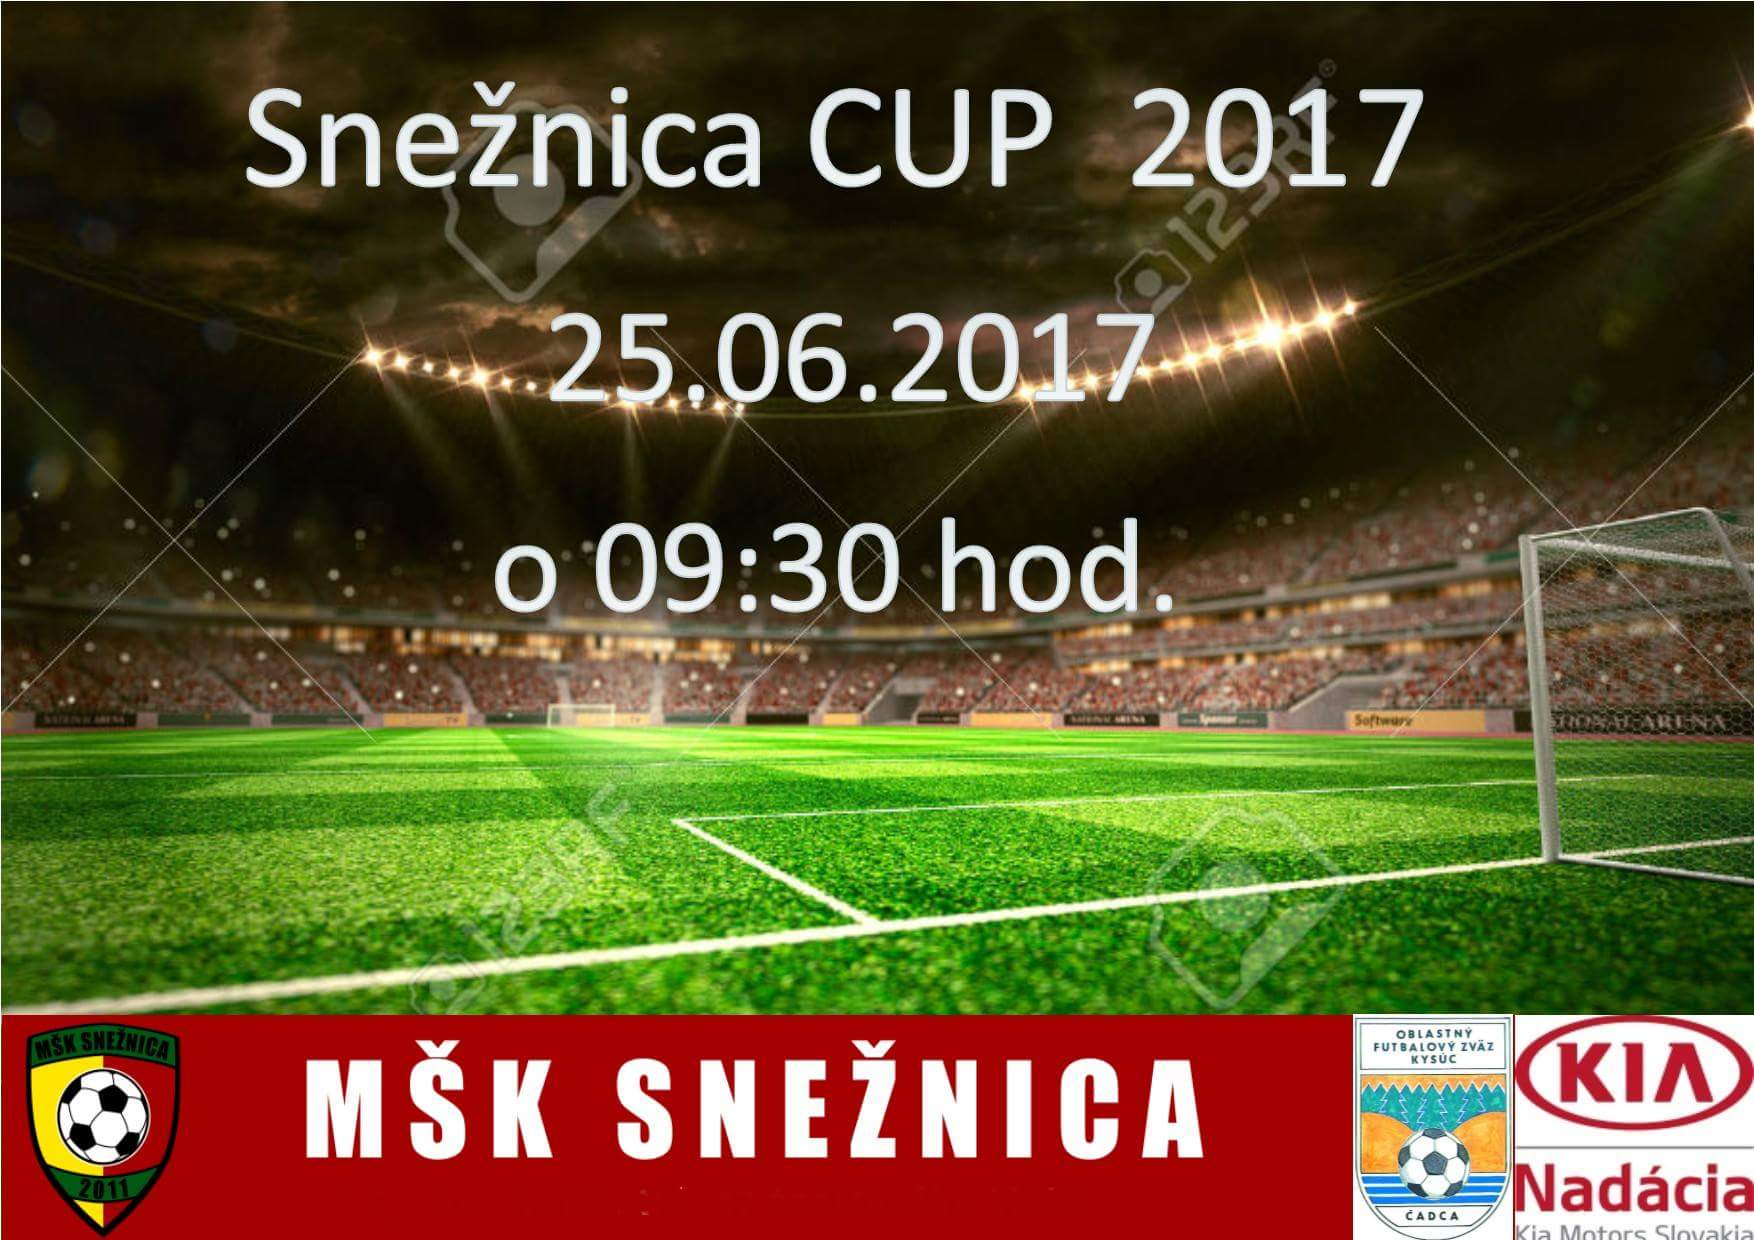 sneznica cup 2017